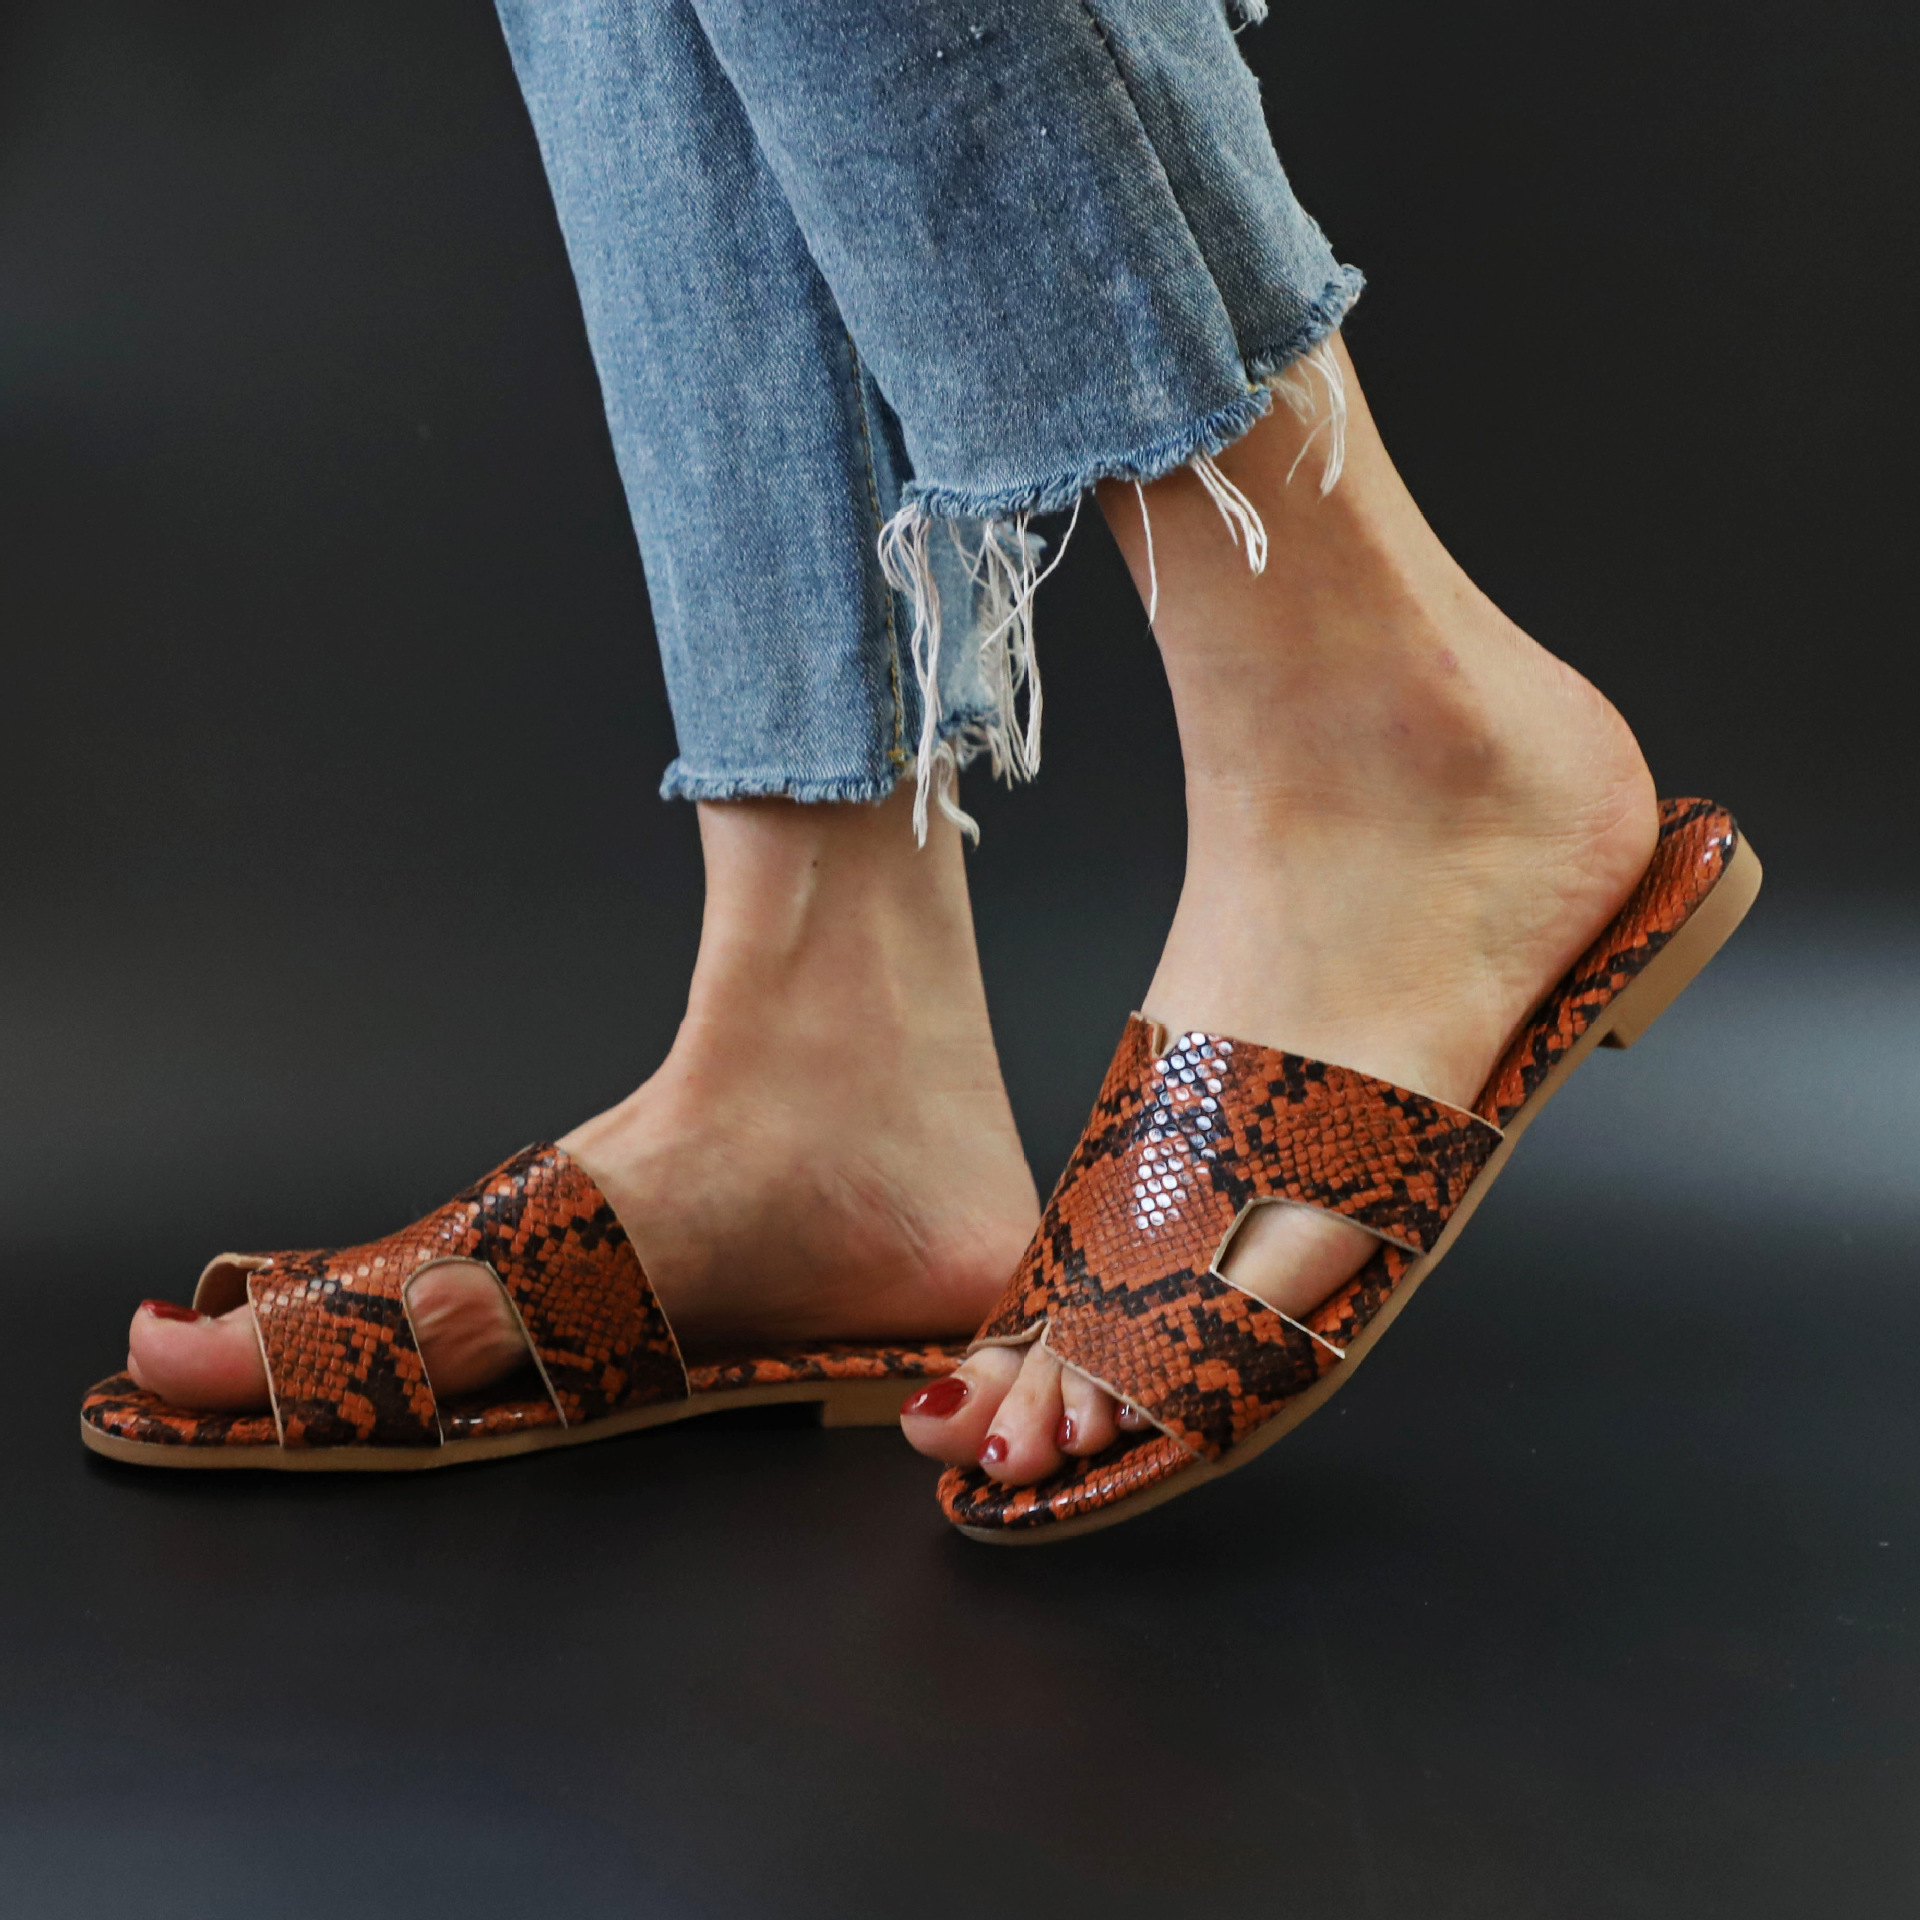 Summer Women Sandals Wedges Casual Shoes Roman Sandals Women Sandalia Feminina Platform Sandal Beach Shoes Zandalias Mujer